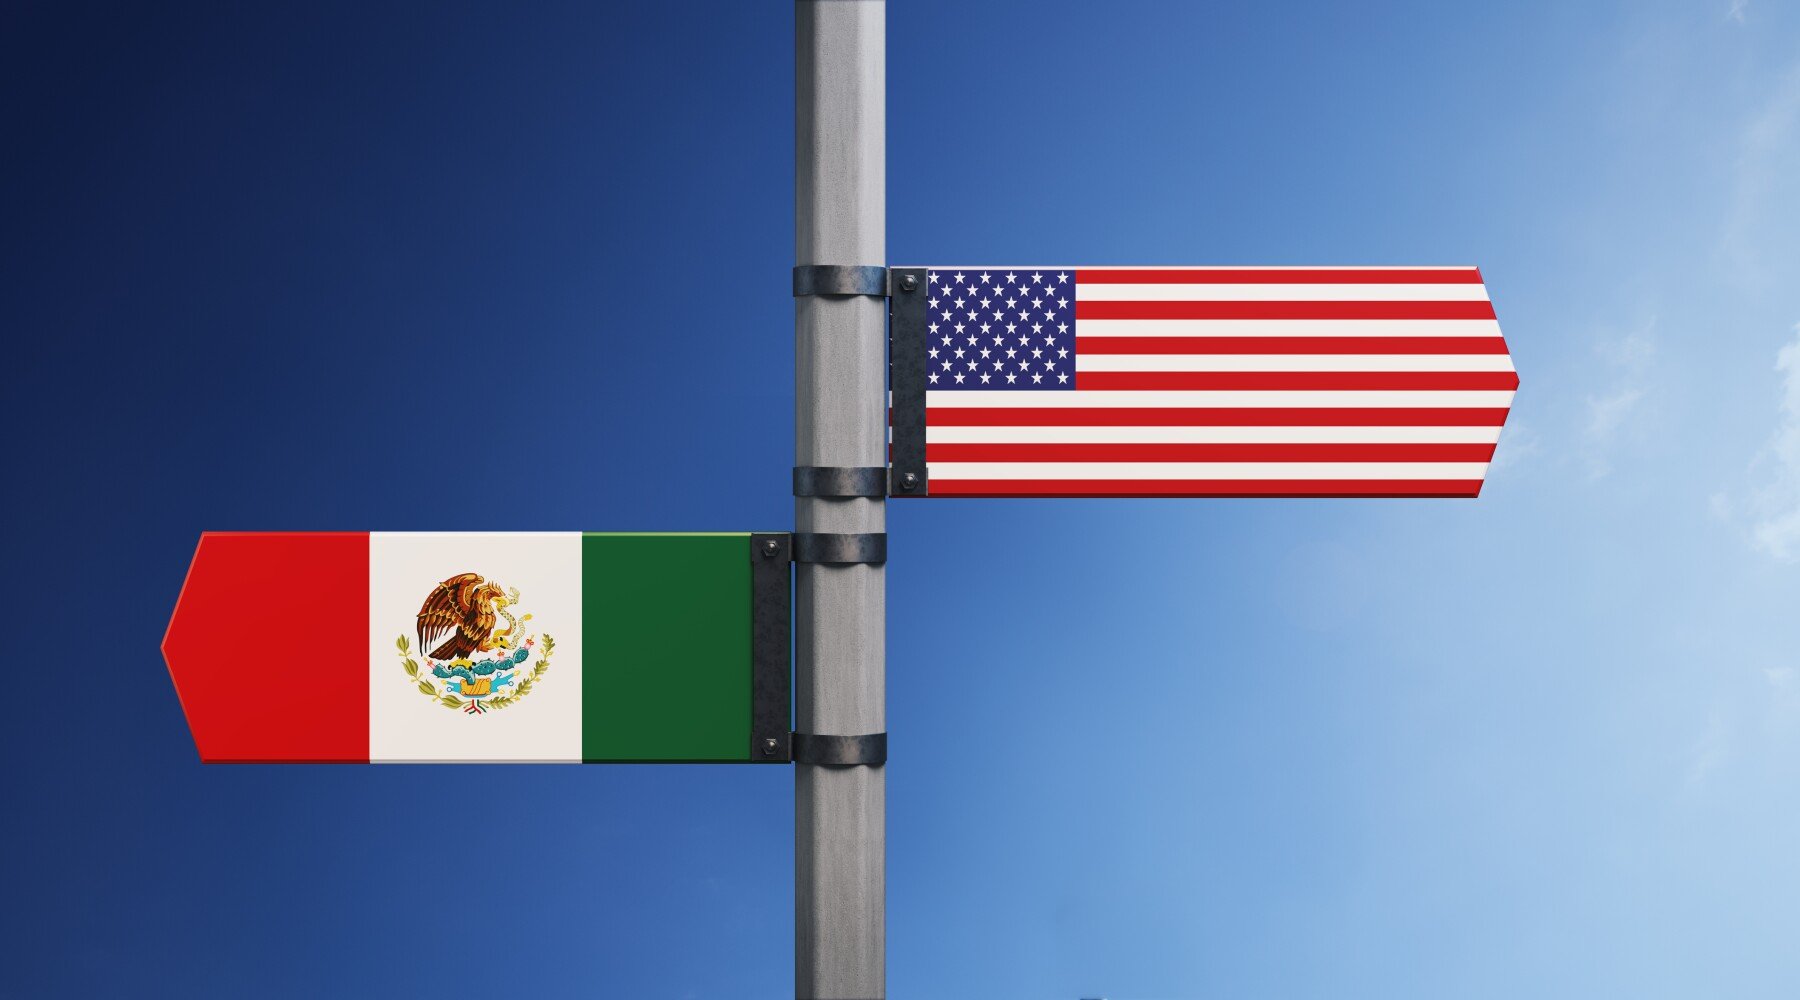 American And Mexican Flag Pair On Road Sign